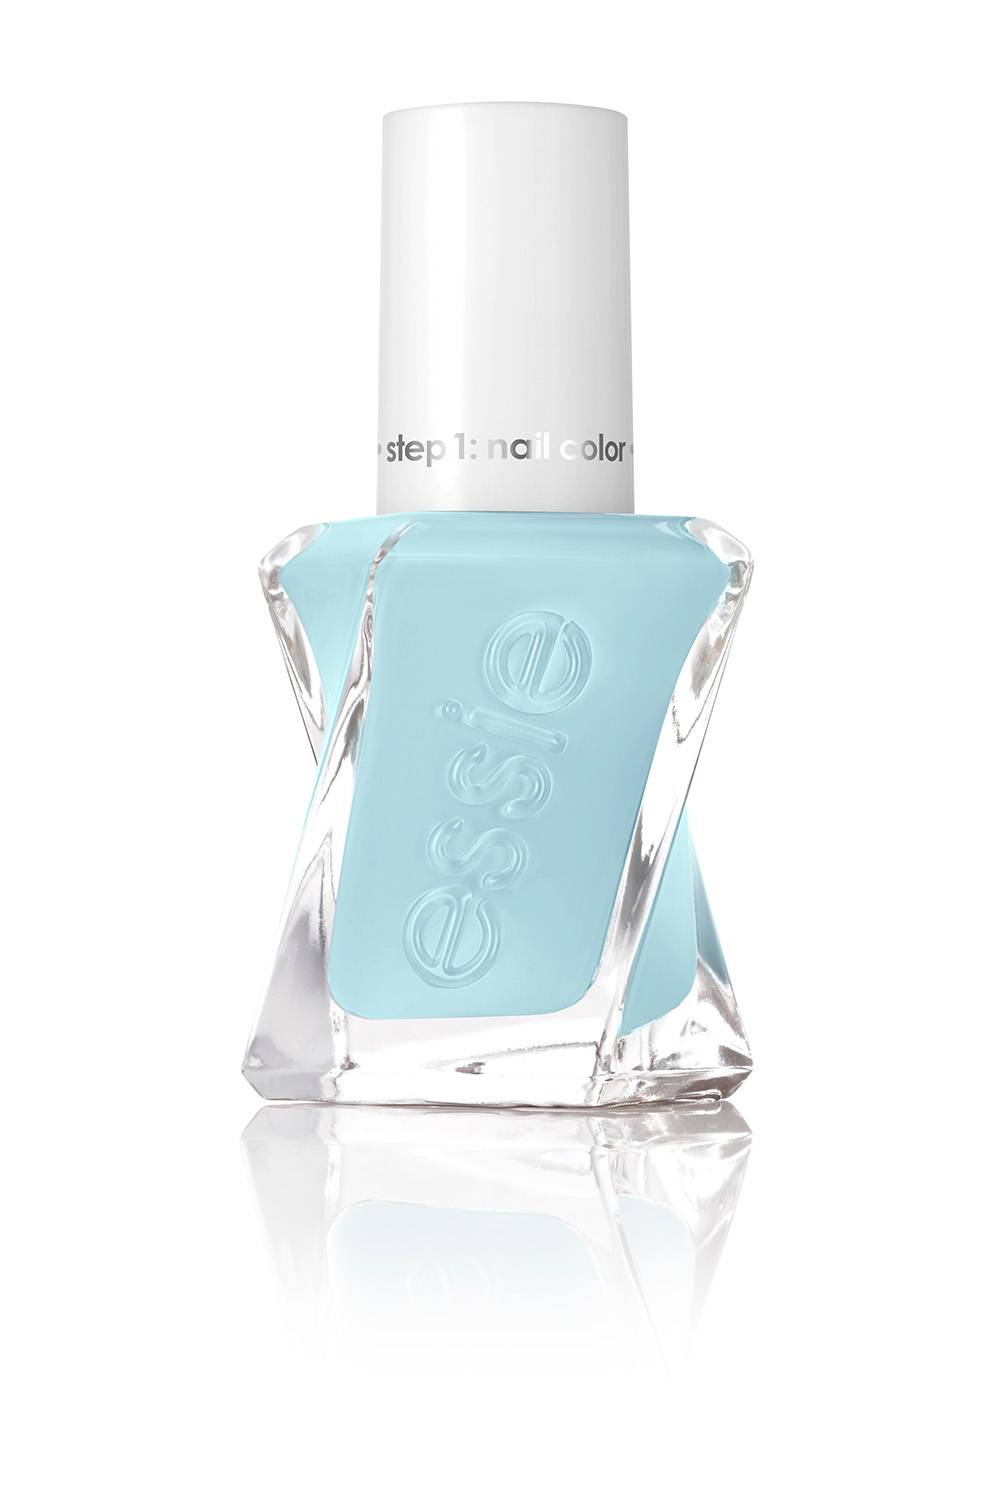 ESSIE-GelCouture-DyeMentions-Nail-Polish-Bottle